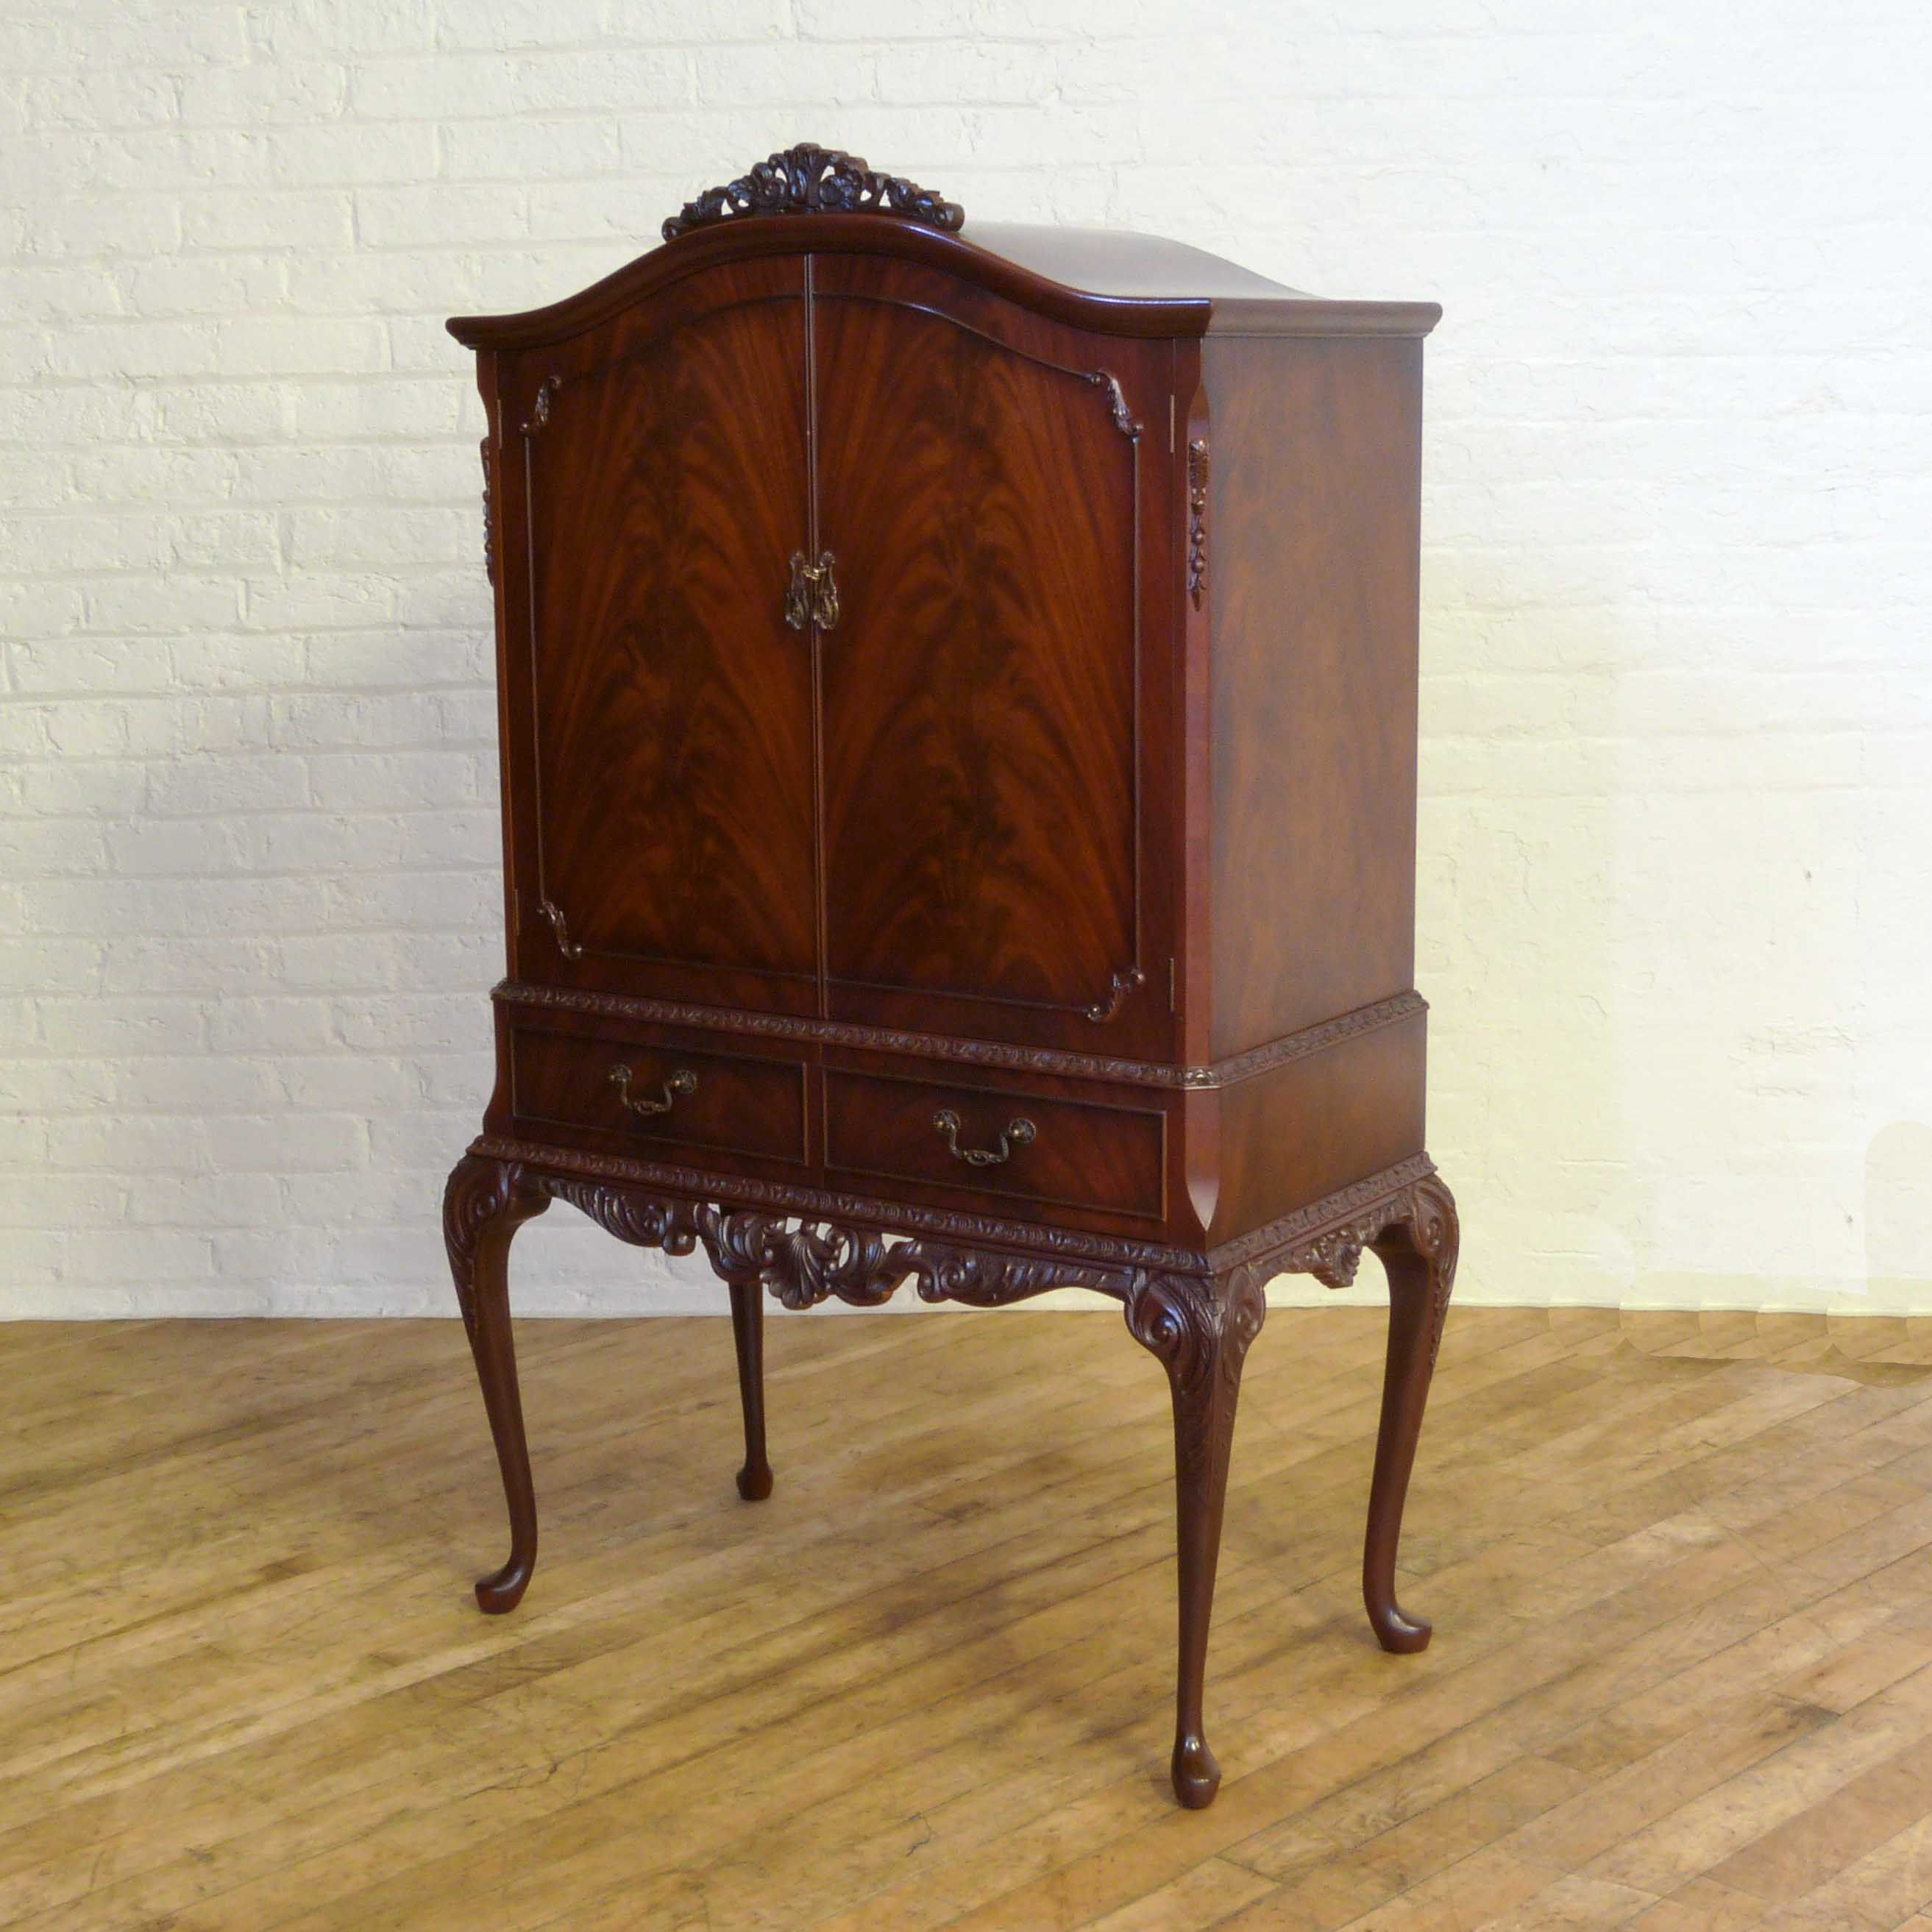 Queen Anne Style Mahogany Cocktail Cabinet witchantiques